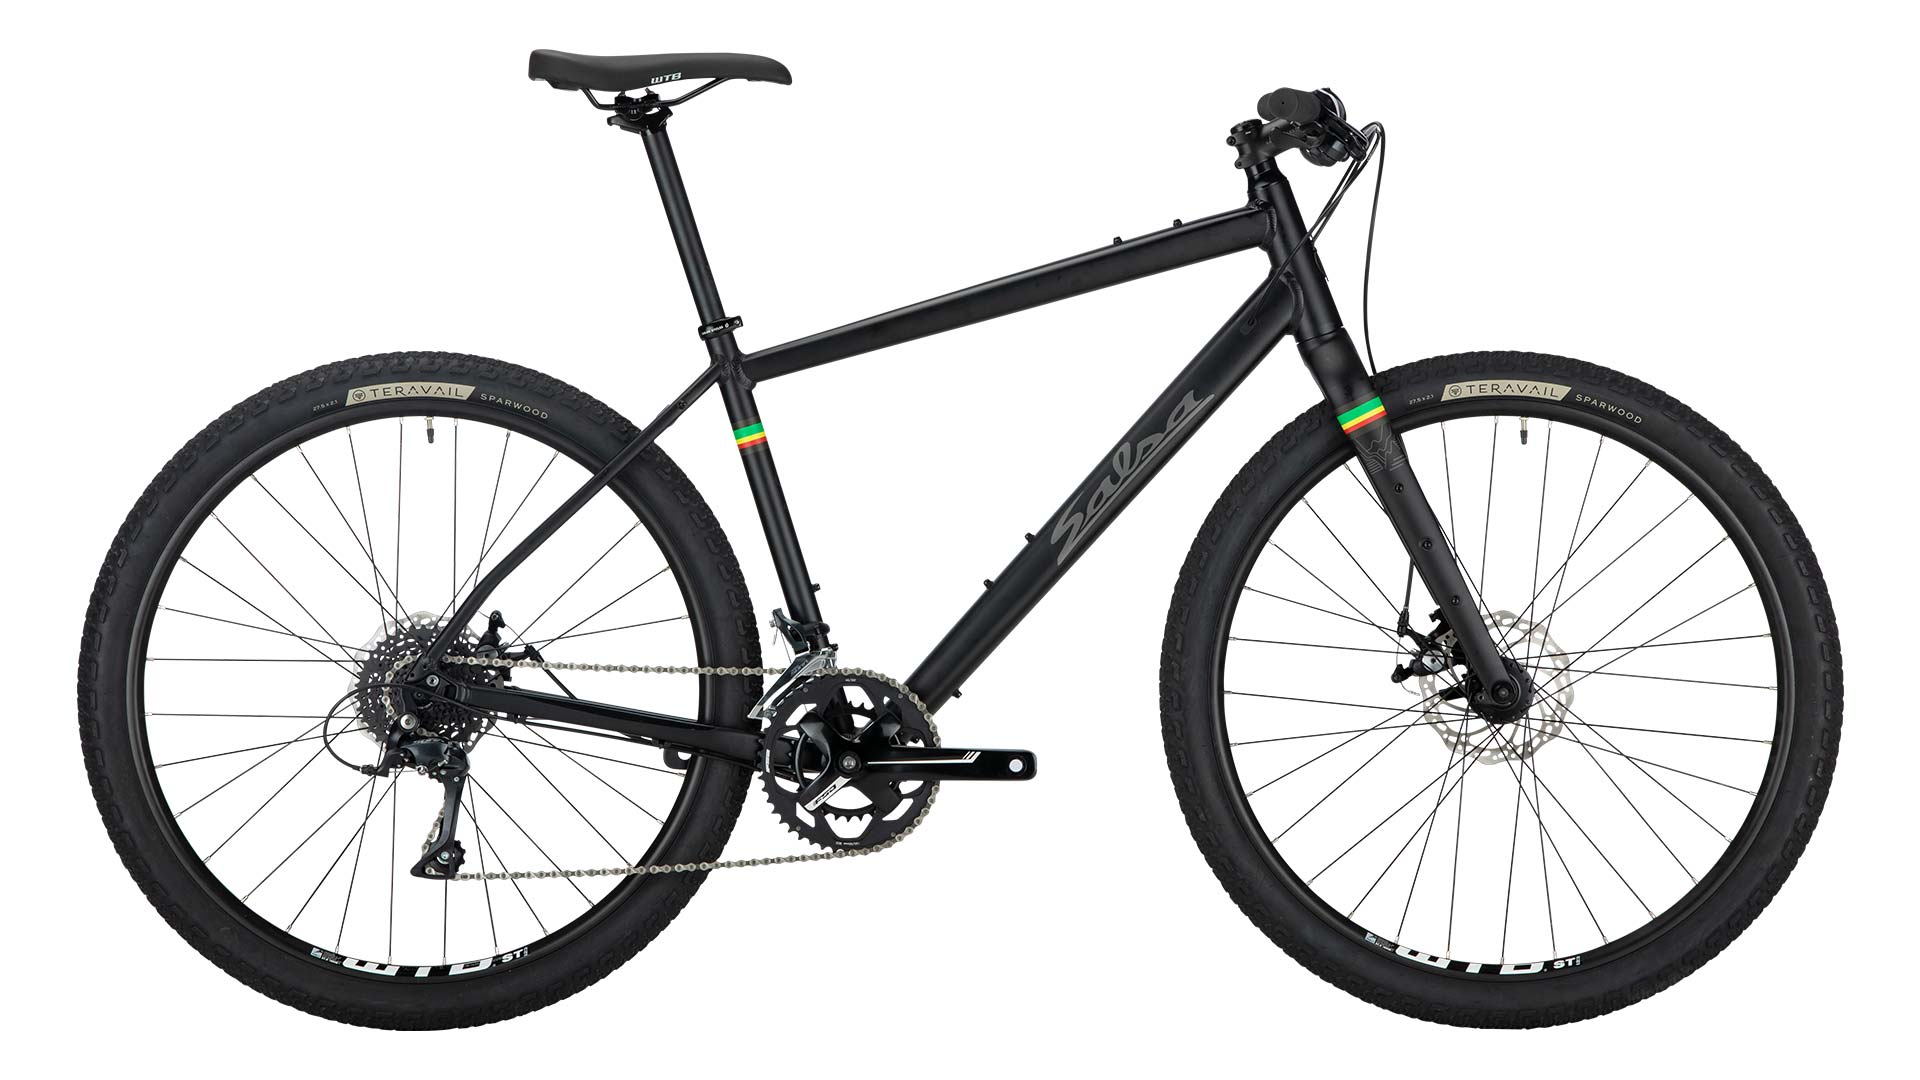 Salsa Journeyman Flat Bar Sora 650b $1199